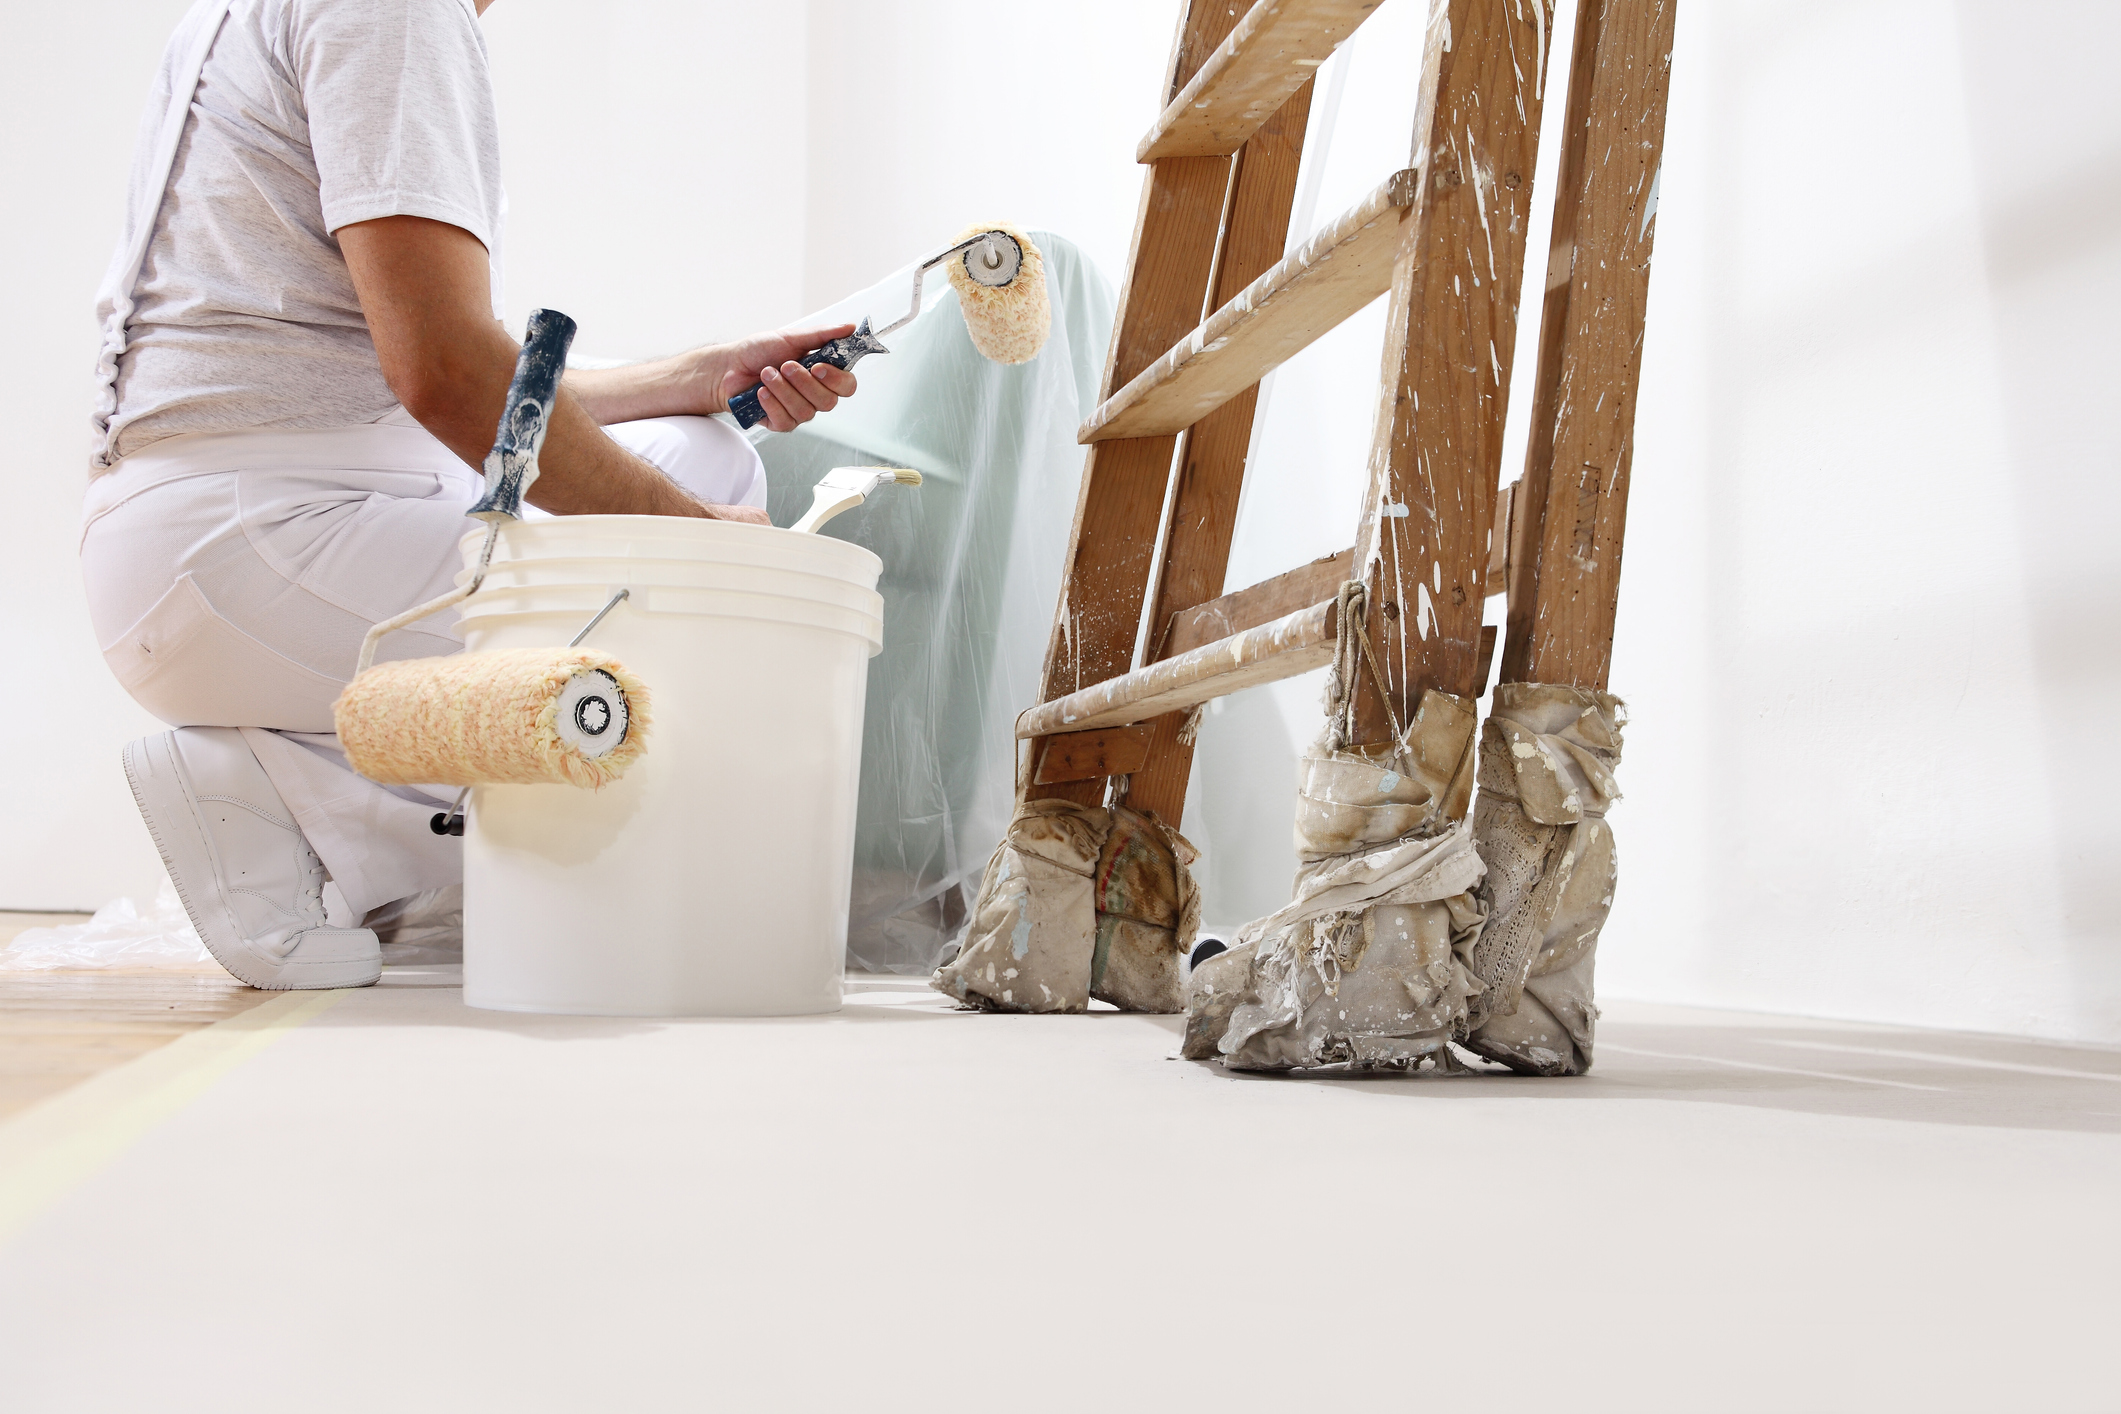 - Sometimes knocking down walls and installing bathrooms is simply not required to give a property a new lease of life.Our light refurbishment services include replacing skirting boards, architrave, doors, fixtures and decorating to a high standard.